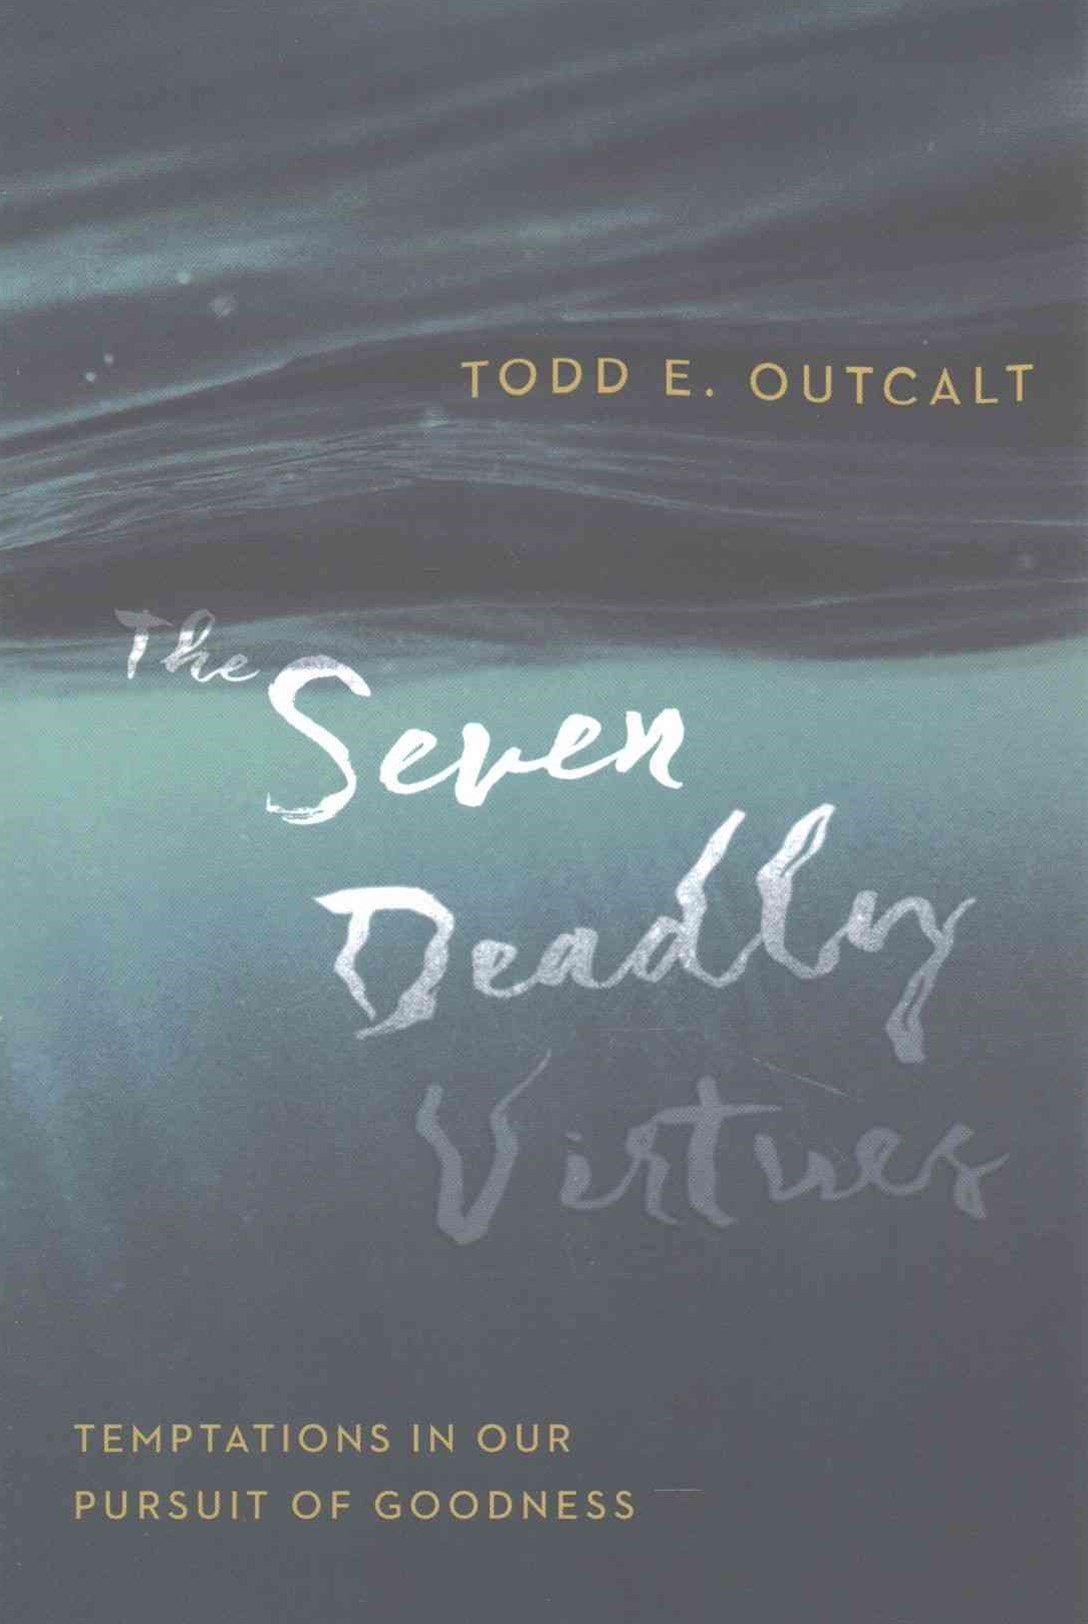 Seven Deadly Virtues